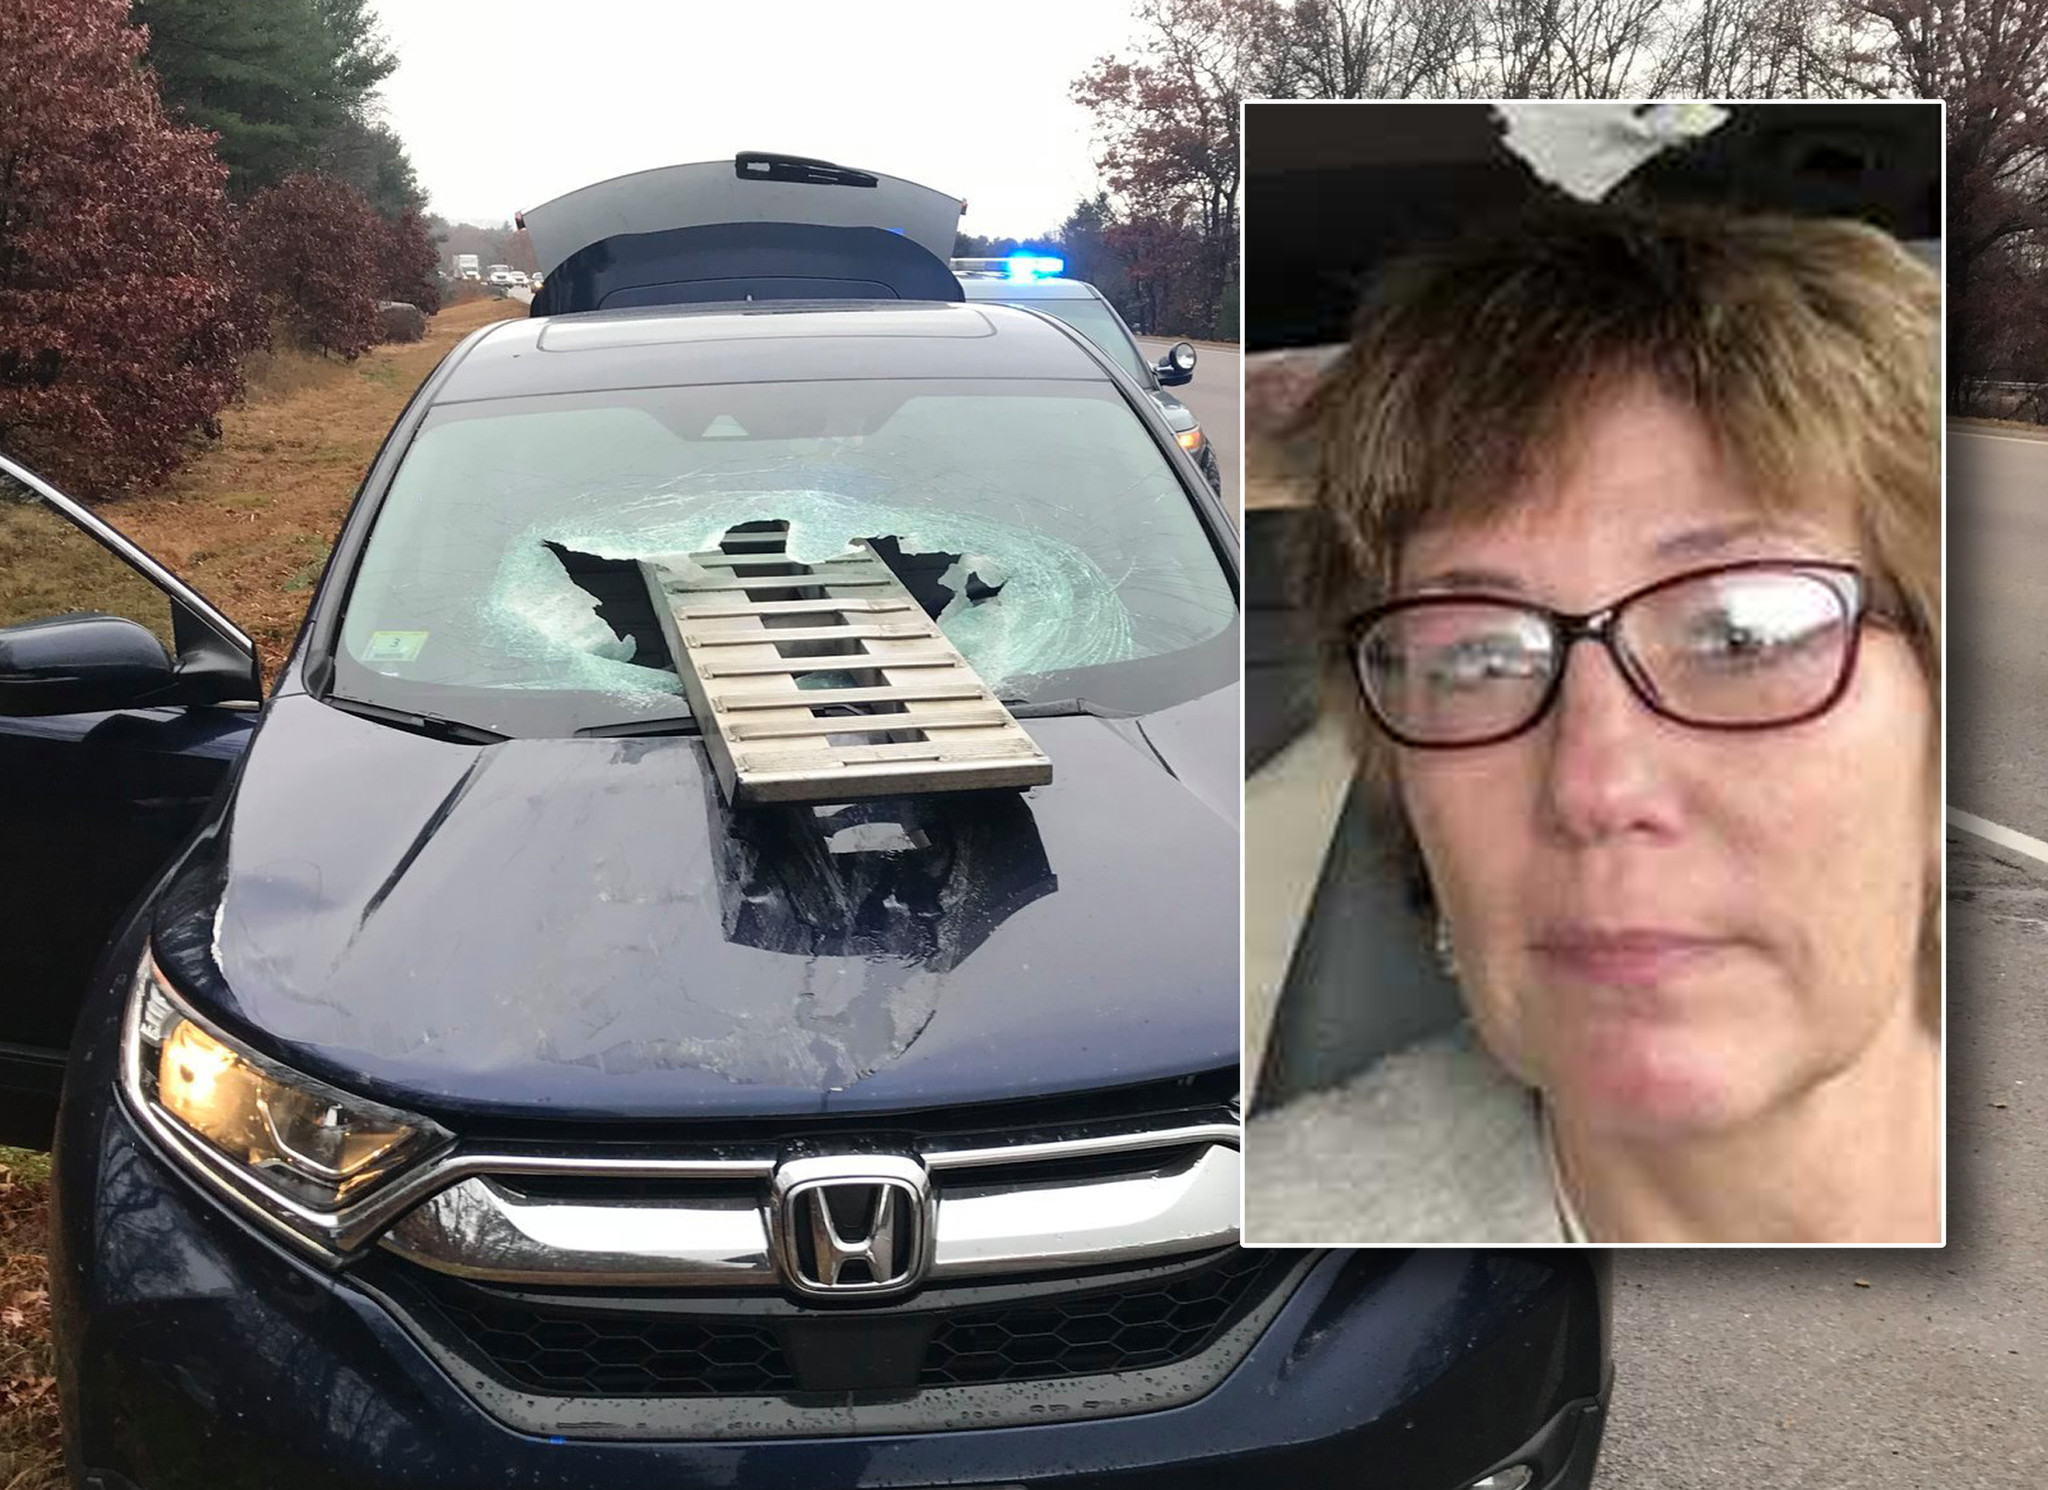 Massachusetts woman survives freak road accident when ramp soars through windshield: 'There was glass everywhere, literally everywhere'